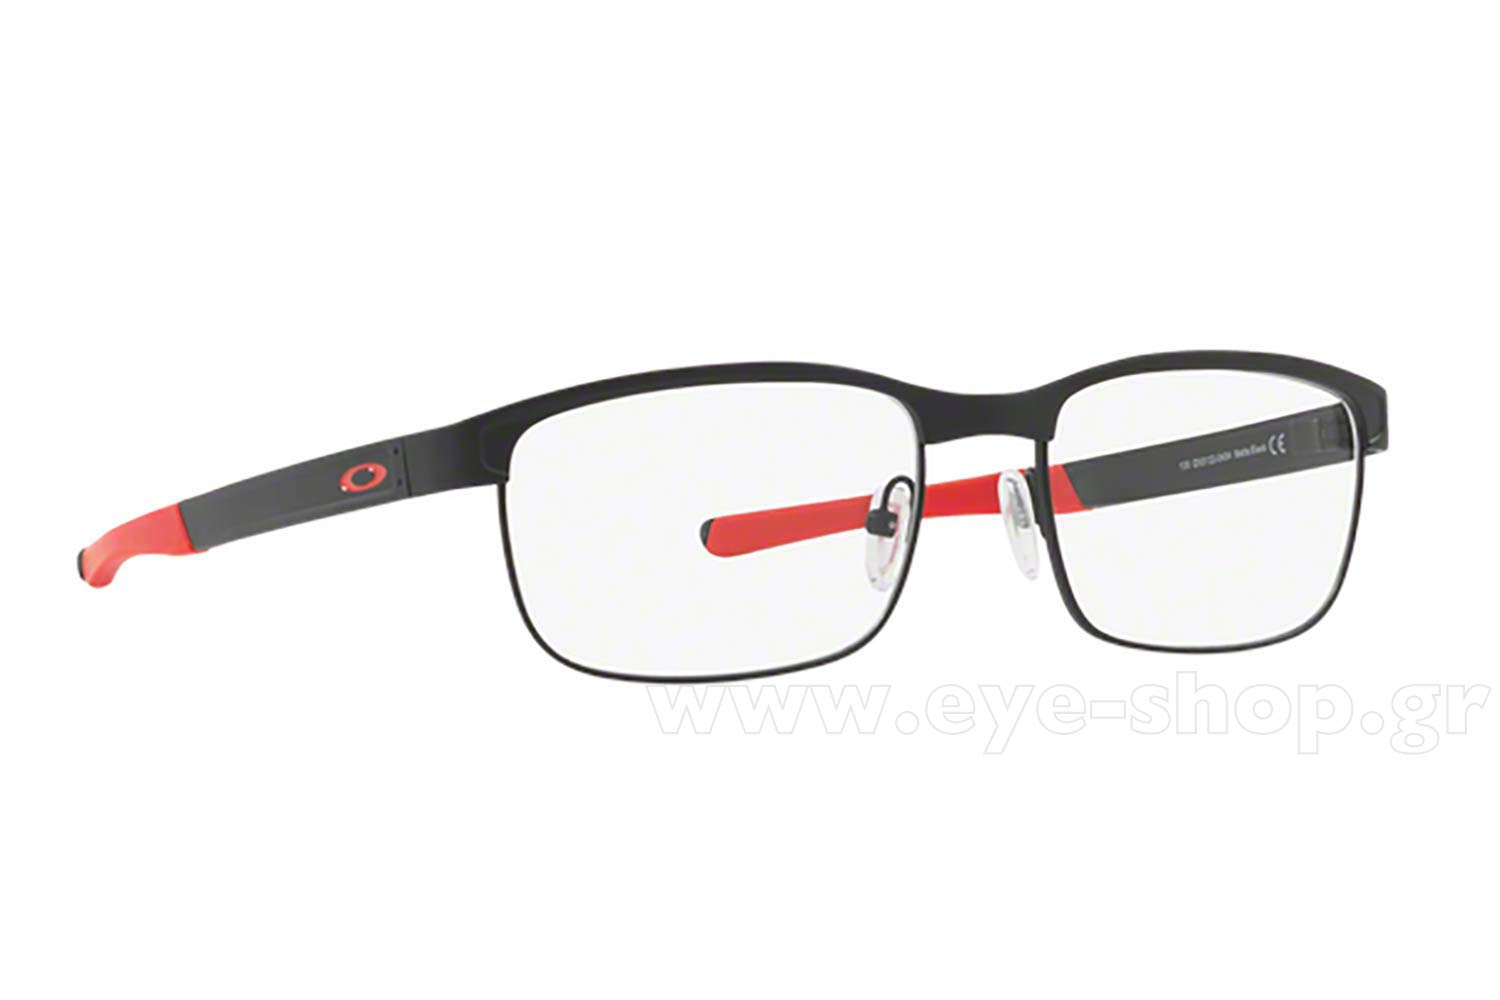 Γυαλιά Oakley SURFACE PLATE 5132 04 Titanium